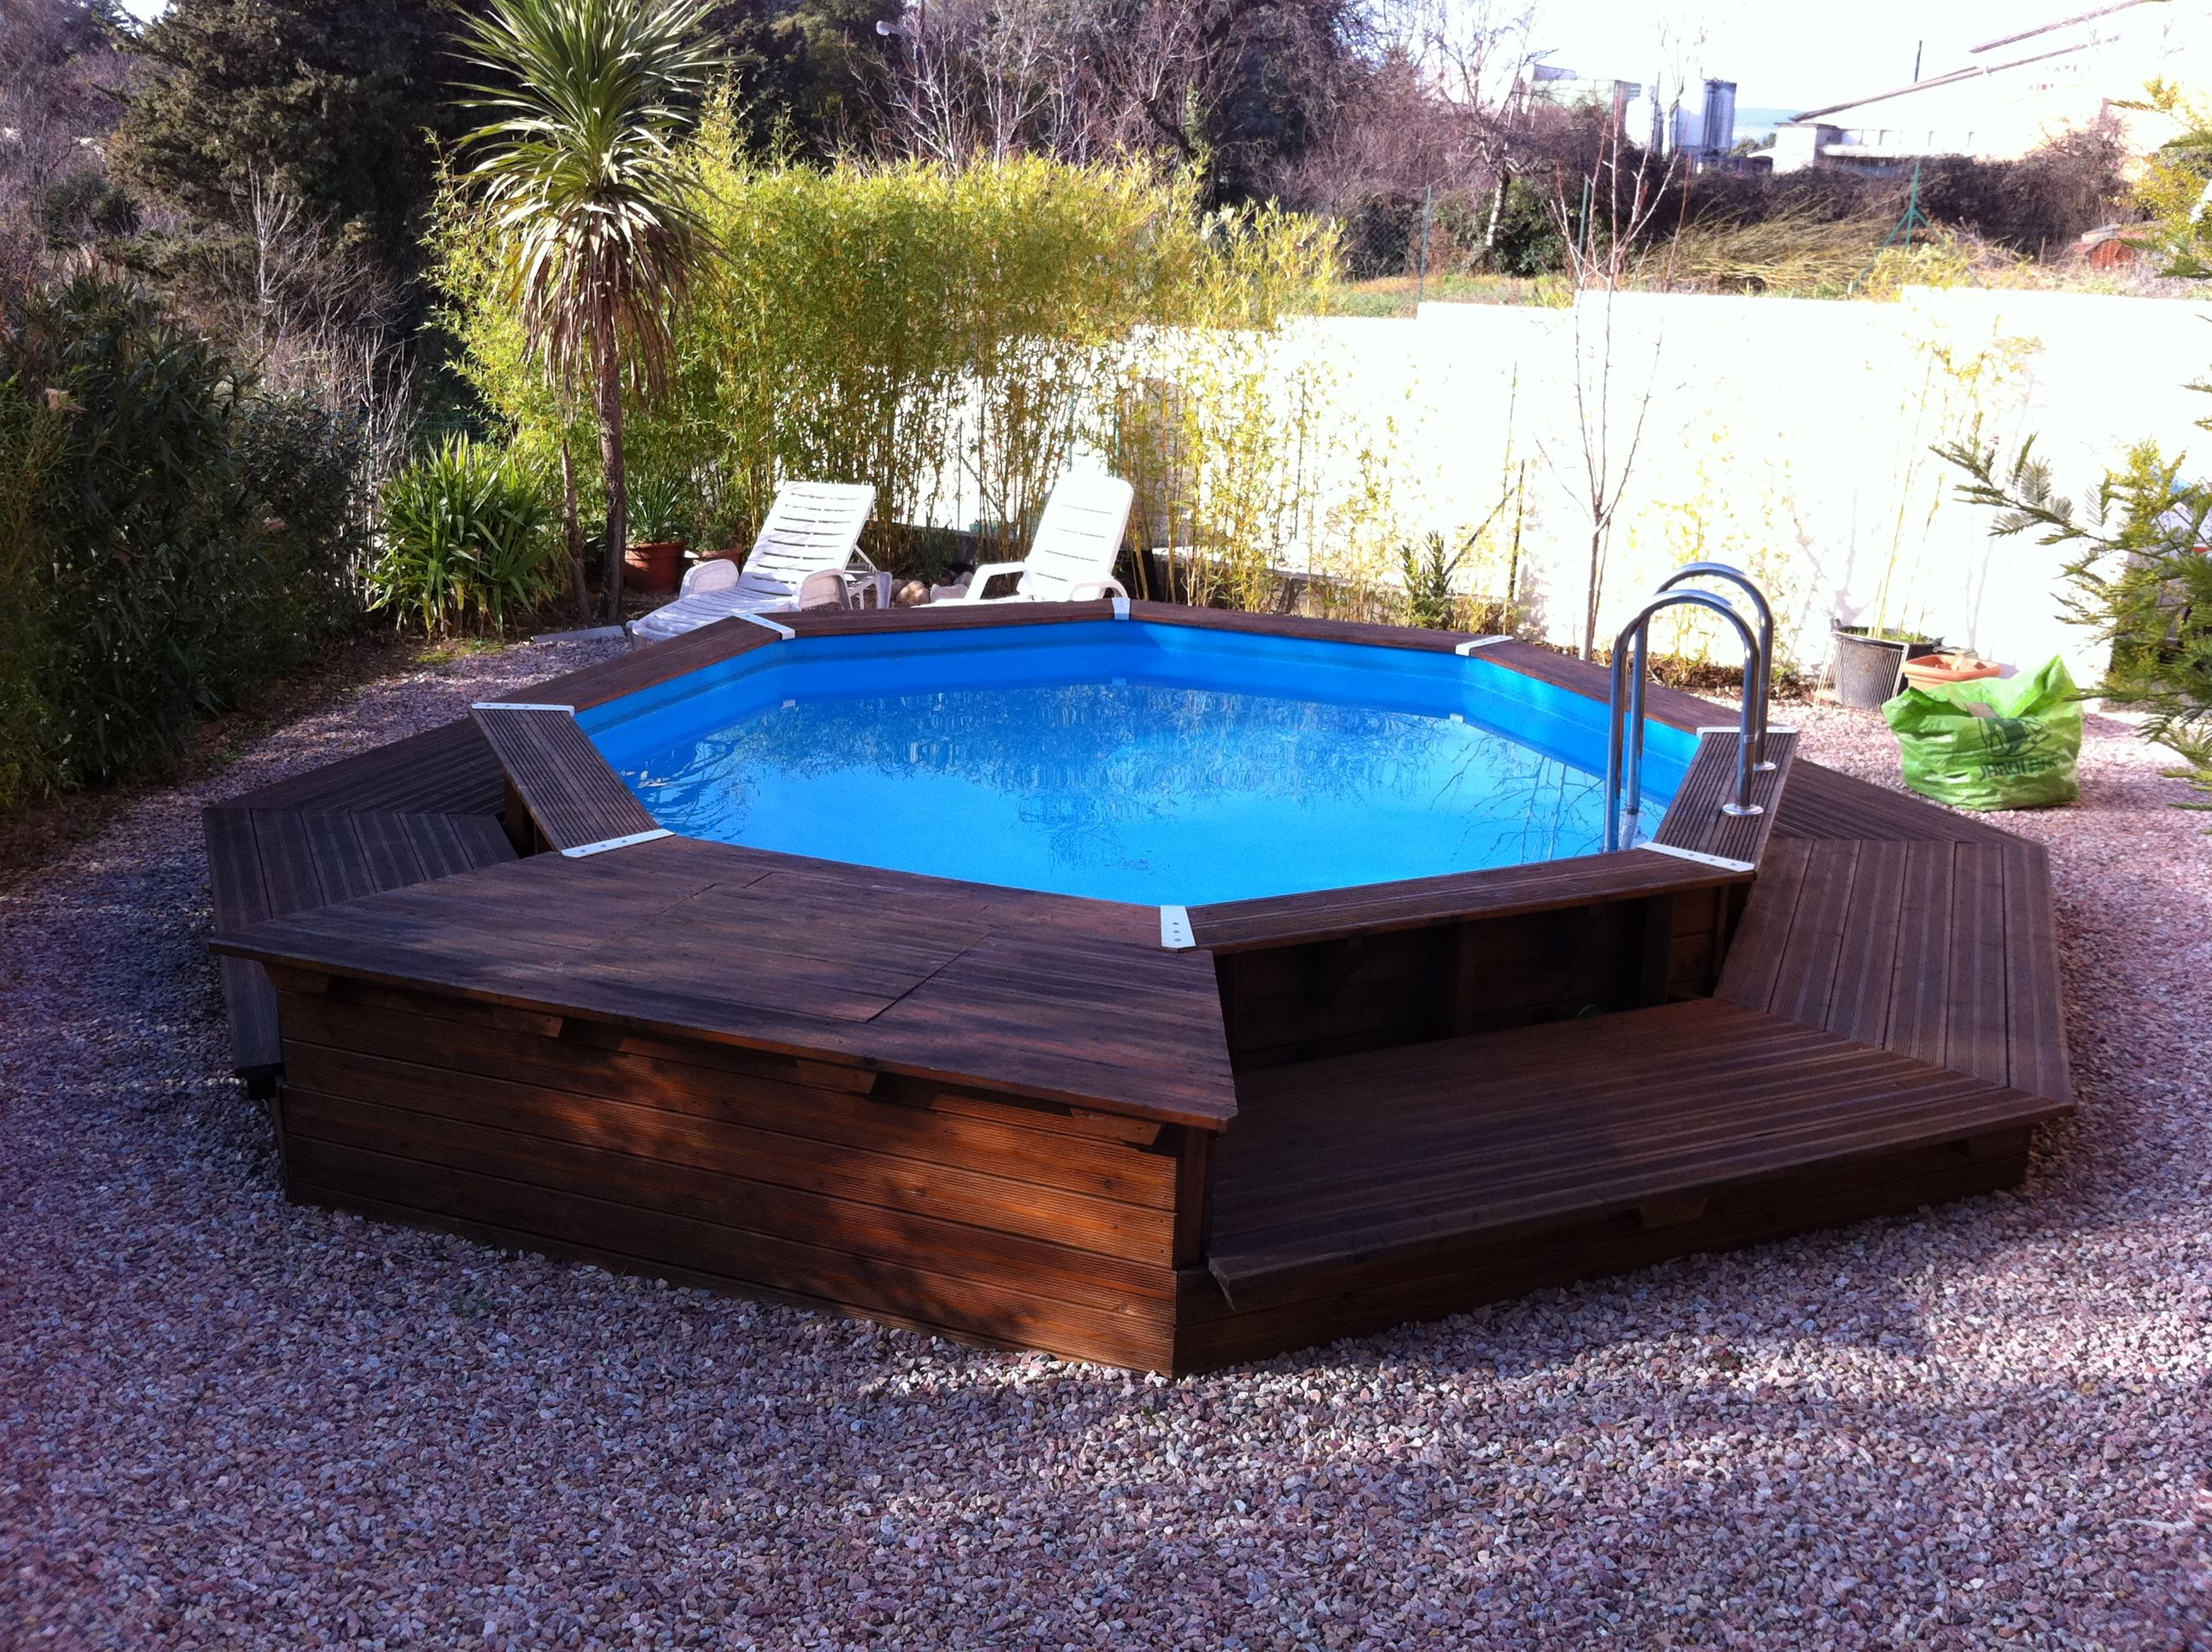 Amenagement Piscine Amenagement Piscine Hors Sol Habillage Piscine Hors Sol Piscine Hors Sol Ronde